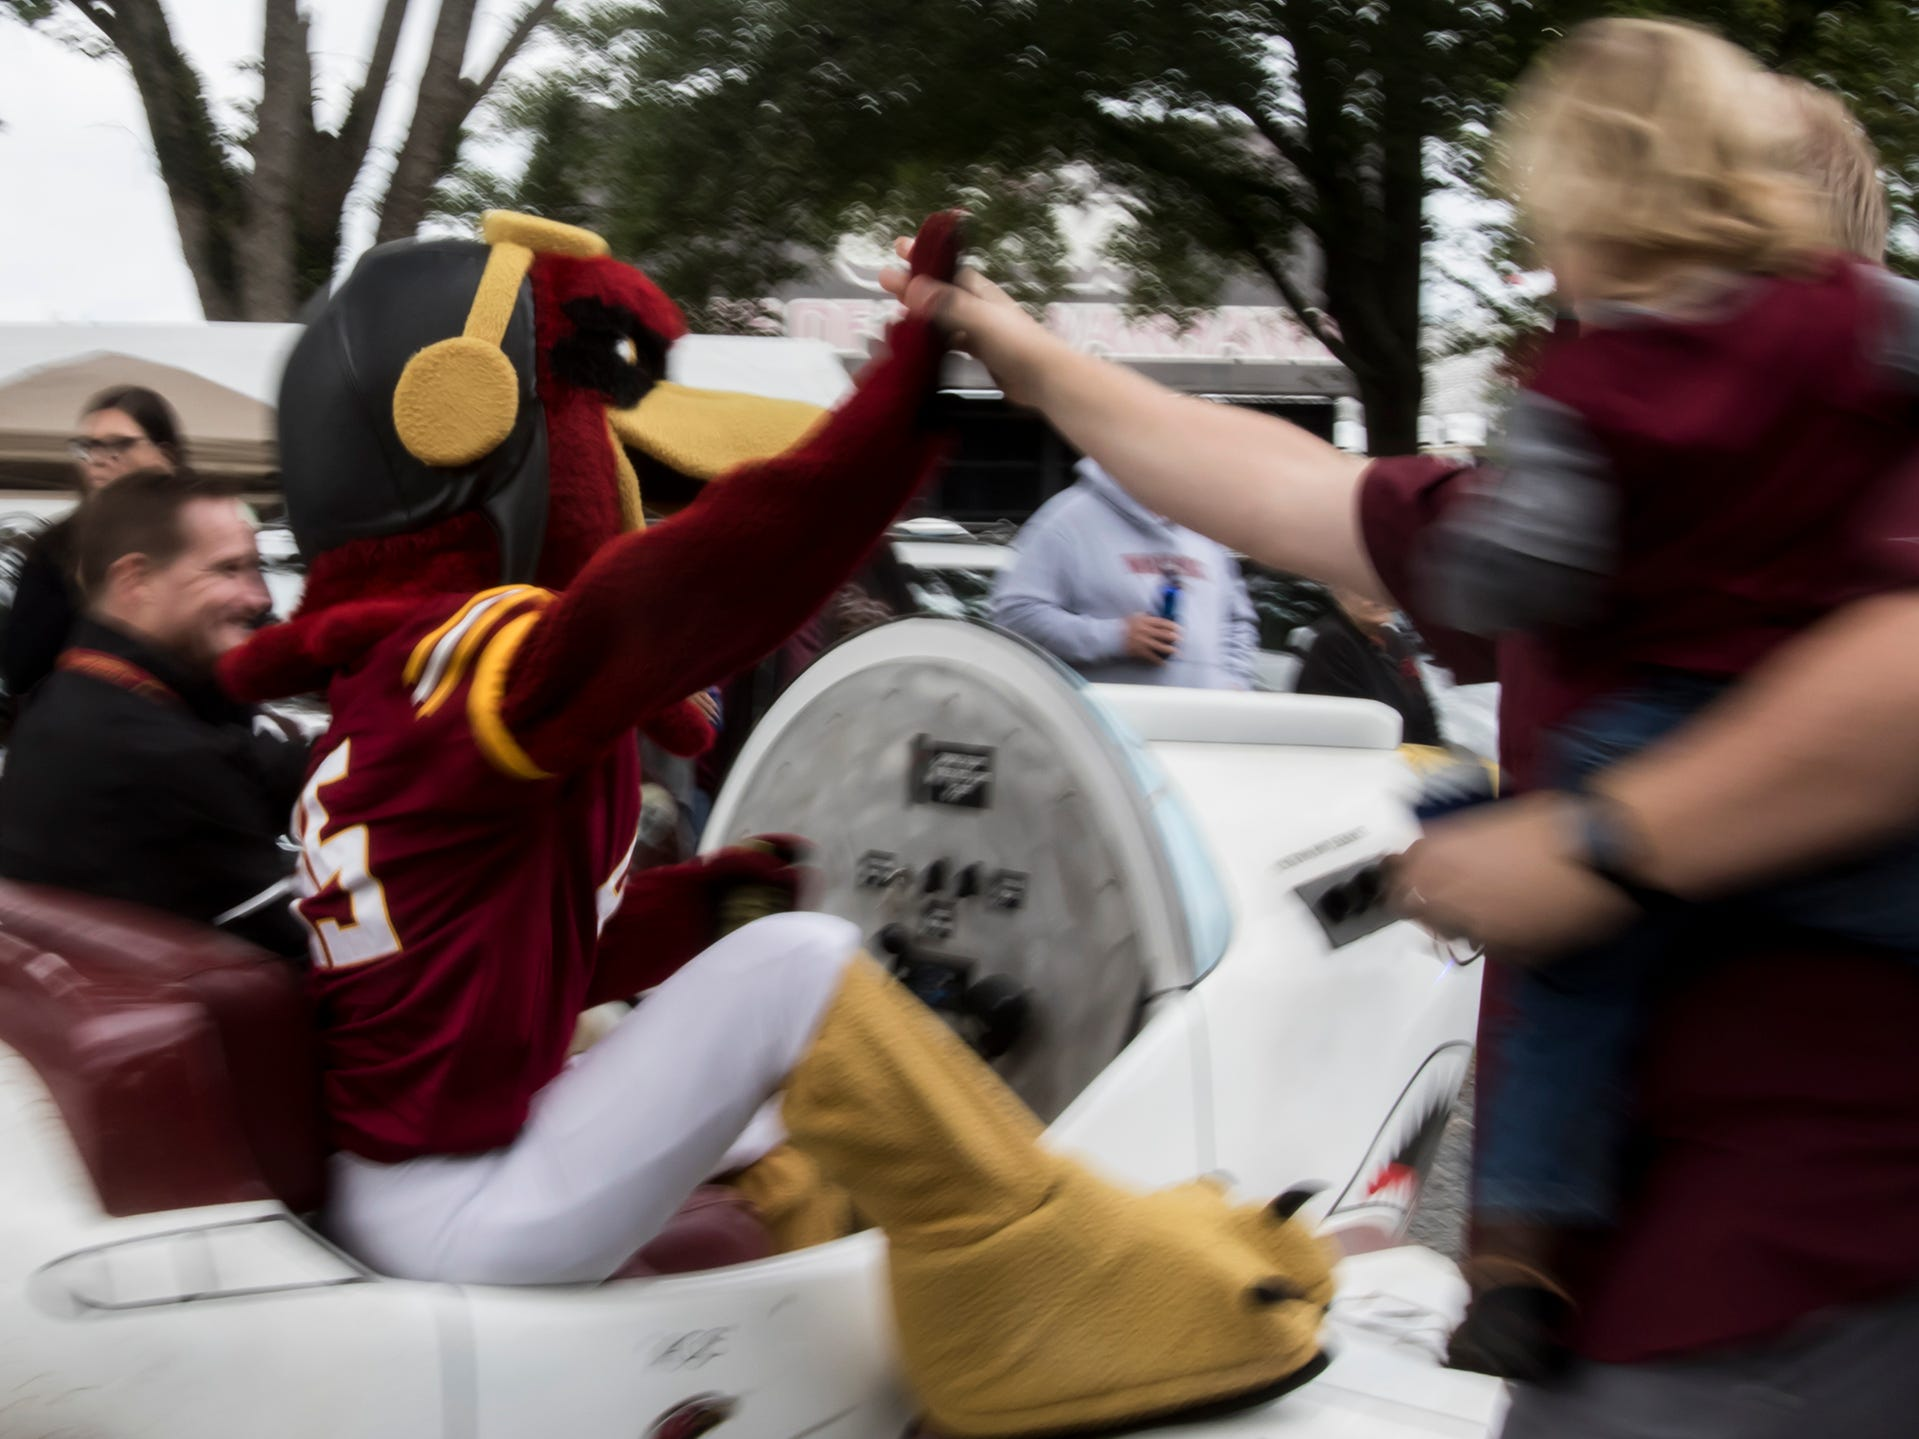 University of Louisiana at Monroe celebrated Homecoming with a parade through The Grove prior to the football game against Texas State University on Oct. 20 in Monroe, La.